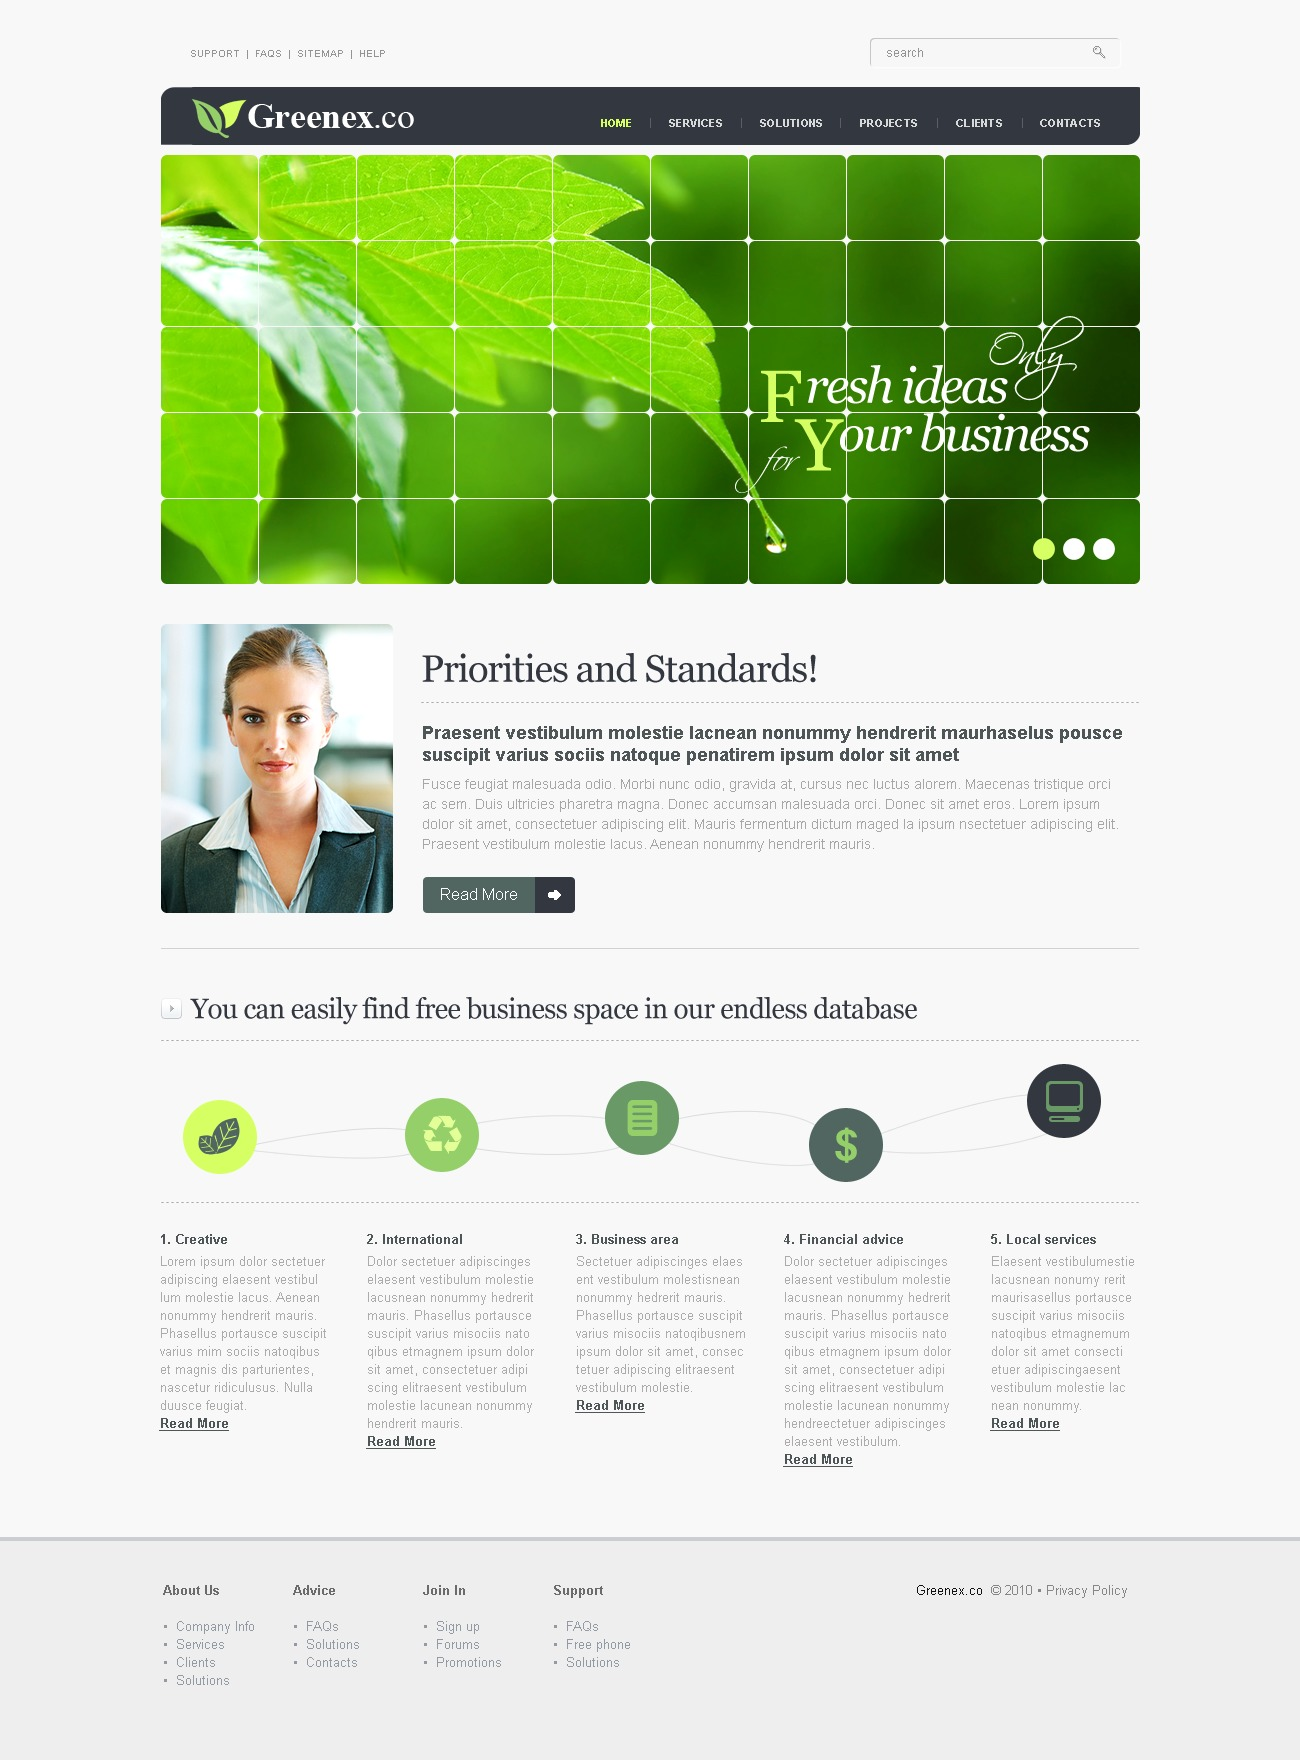 The Greenex Business Company PSD Design 54108, one of the best PSD templates of its kind (business, flash 8, wide), also known as greenex business company PSD template, corporate solutions PSD template, innovations PSD template, contacts PSD template, service PSD template, support PSD template, information dealer PSD template, stocks PSD template, team PSD template, success PSD template, money PSD template, marketing PSD template, director PSD template, manager PSD template, analytics PSD template, planning PSD template, limited PSD template, office PSD template, sales and related with greenex business company, corporate solutions, innovations, contacts, service, support, information dealer, stocks, team, success, money, marketing, director, manager, analytics, planning, limited, office, sales, etc.